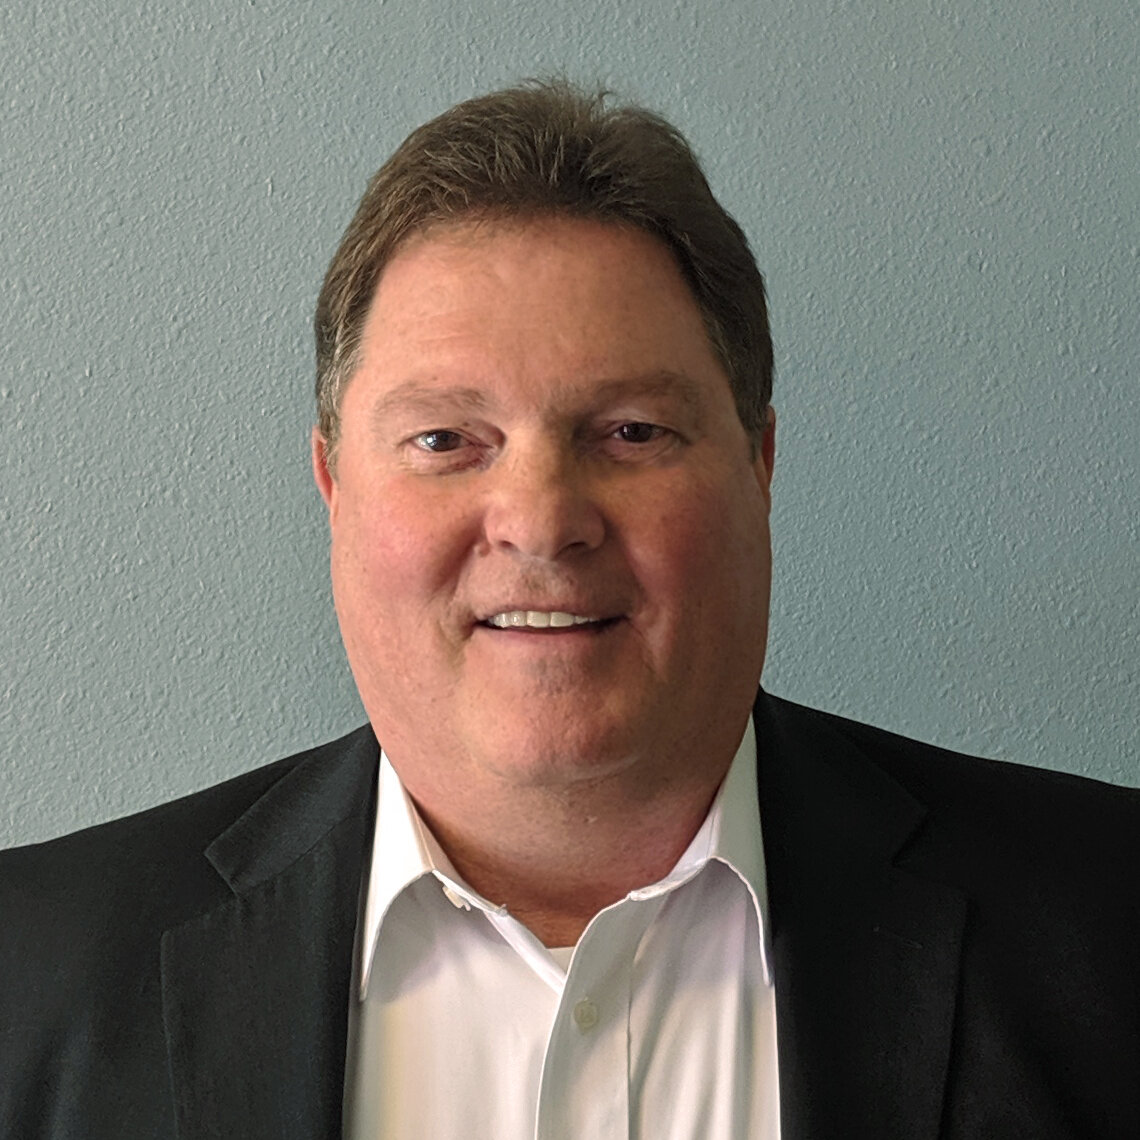 Mark Craig - General Manager of Compass Propertieswww.compassproperties.com